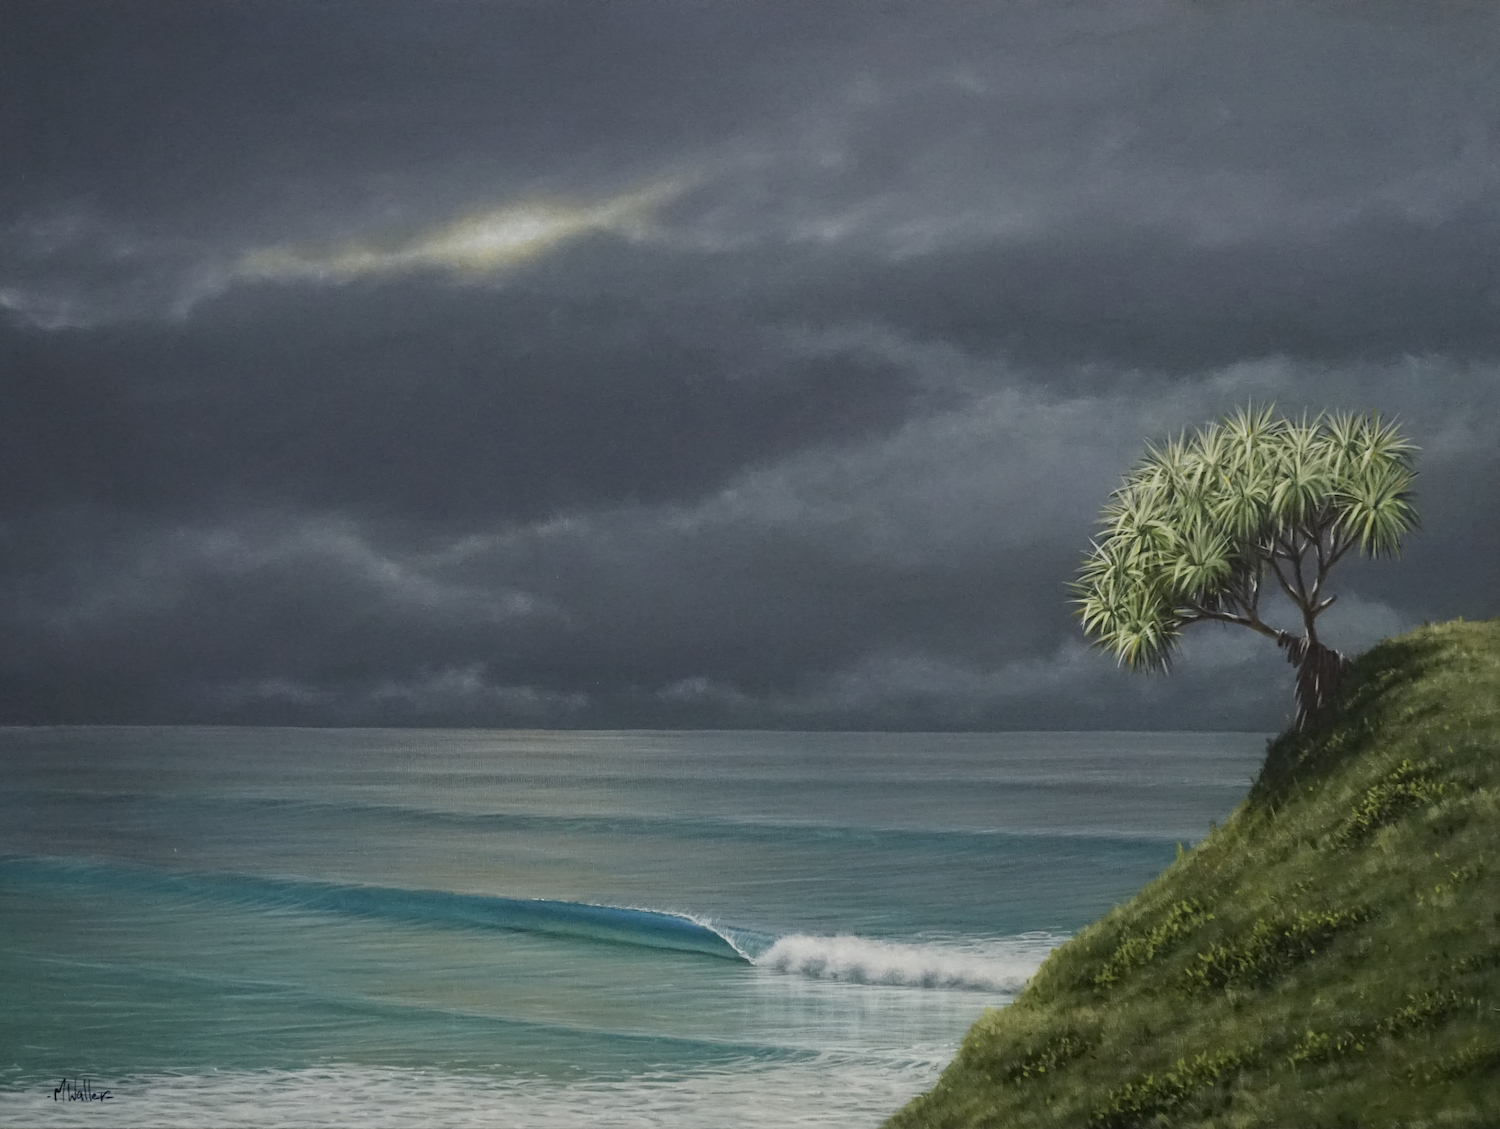 Another beautiful example of painting a storm.  Creating mood with flashes of light and colour in the foreground.